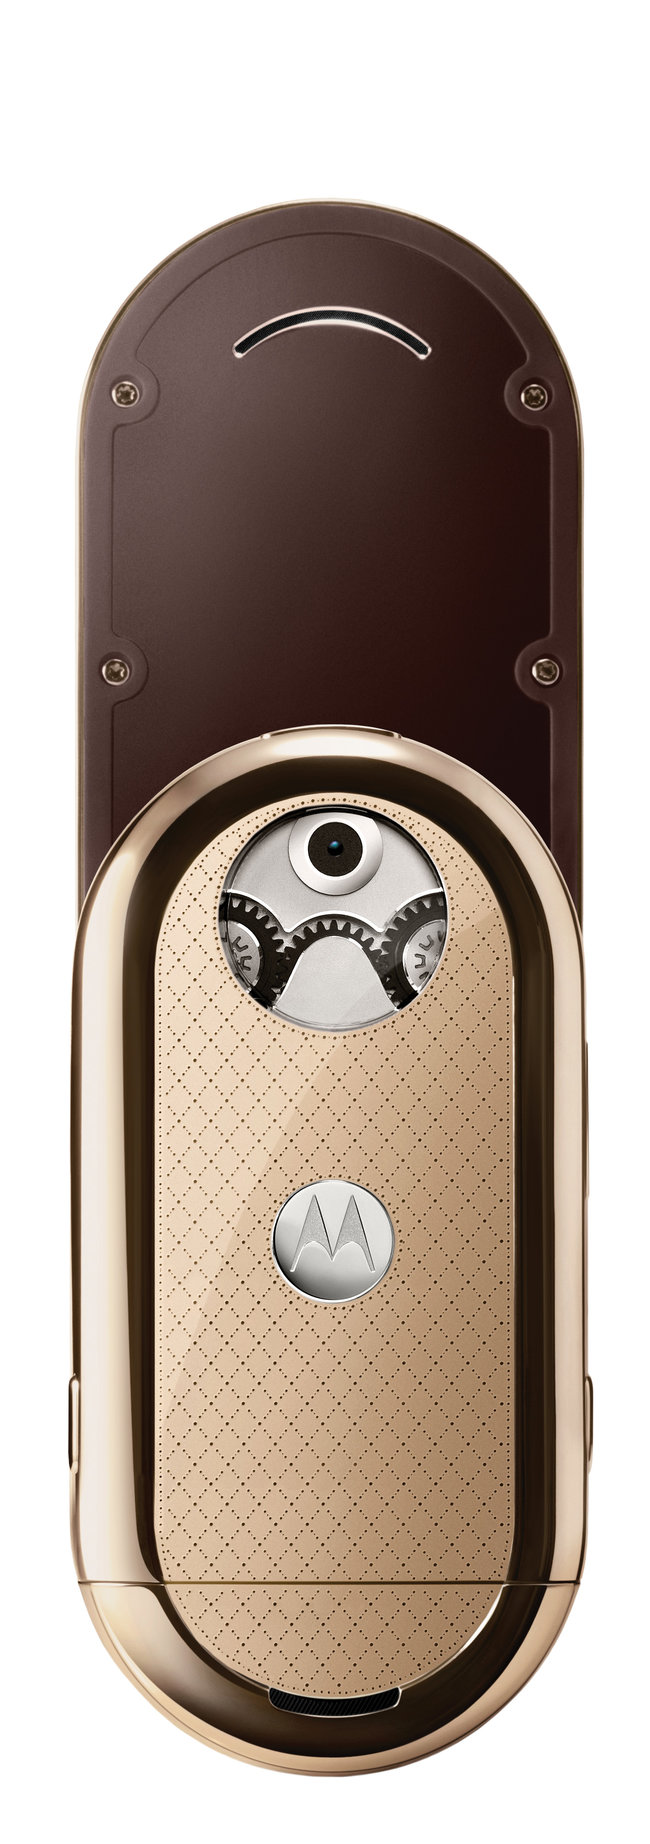 Motorola Aura Diamond Edition announced  - photo 2